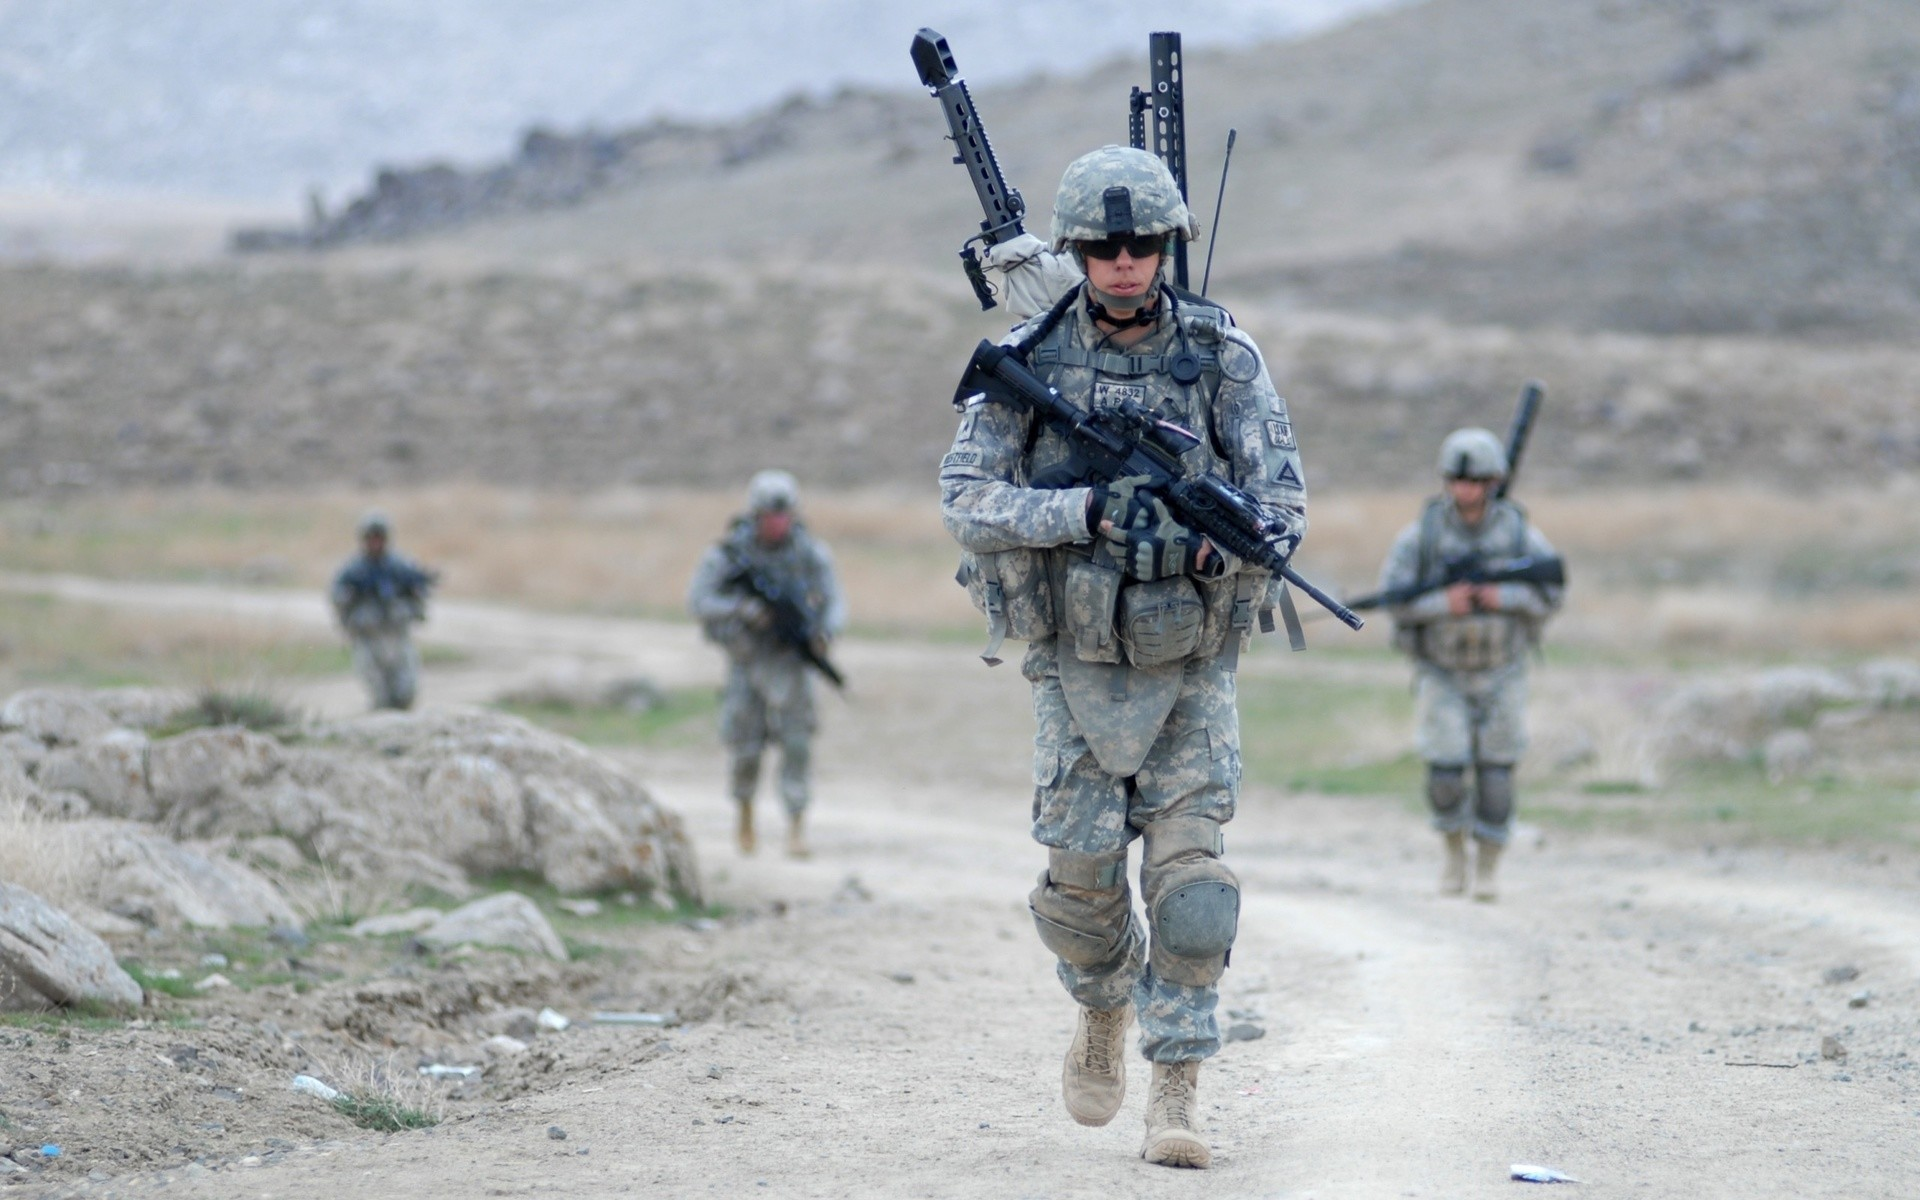 Res: 1920x1200, Soldiers, Usa, Cargo, Bears, Military, M4a1